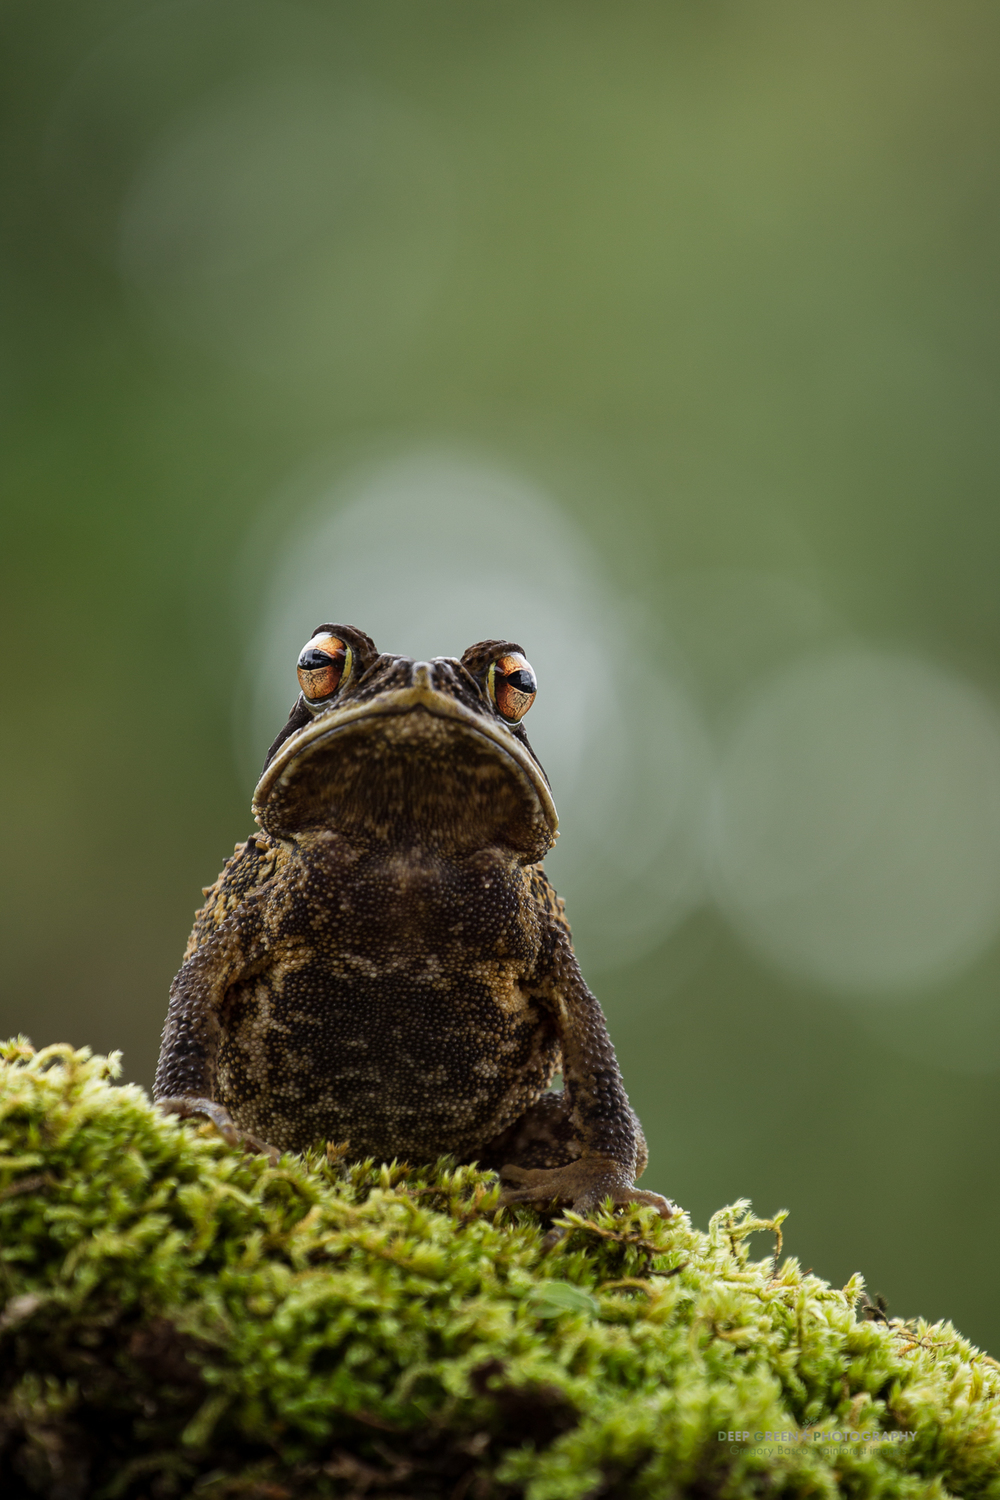 Gulf Coast Toad (Bufo valliceps)